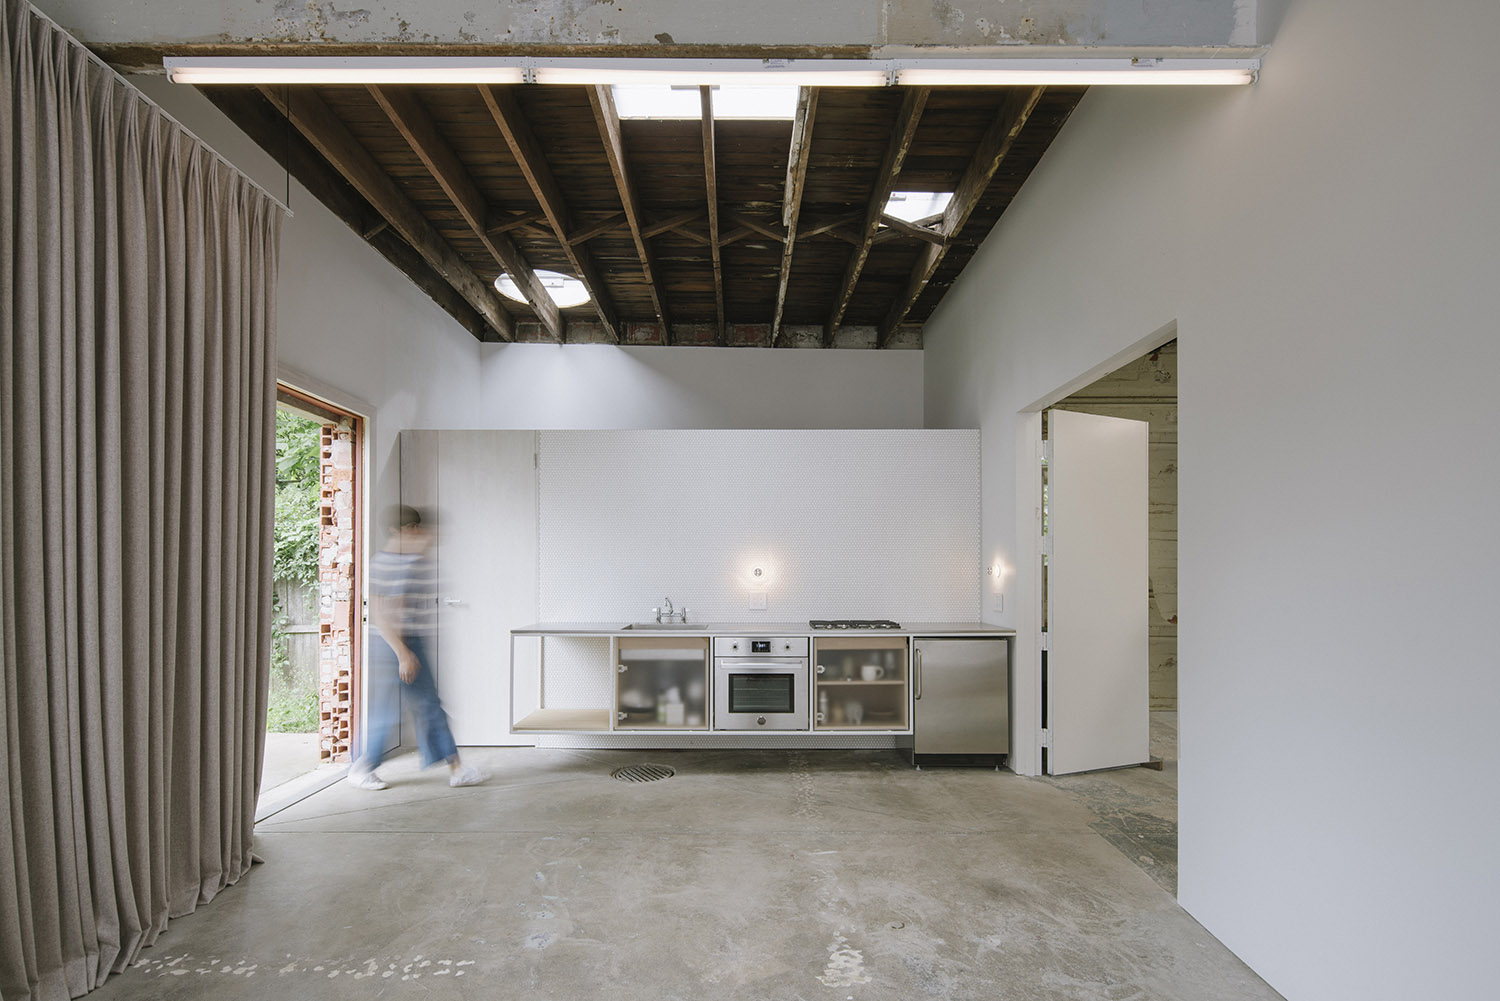 Photograph showing the infrastructure zone for the small space - a wall-hung kitchen area sits directly in front of a bathroom and laundry area. The utilities are condensed into the smallest area possible Florian Holzherr